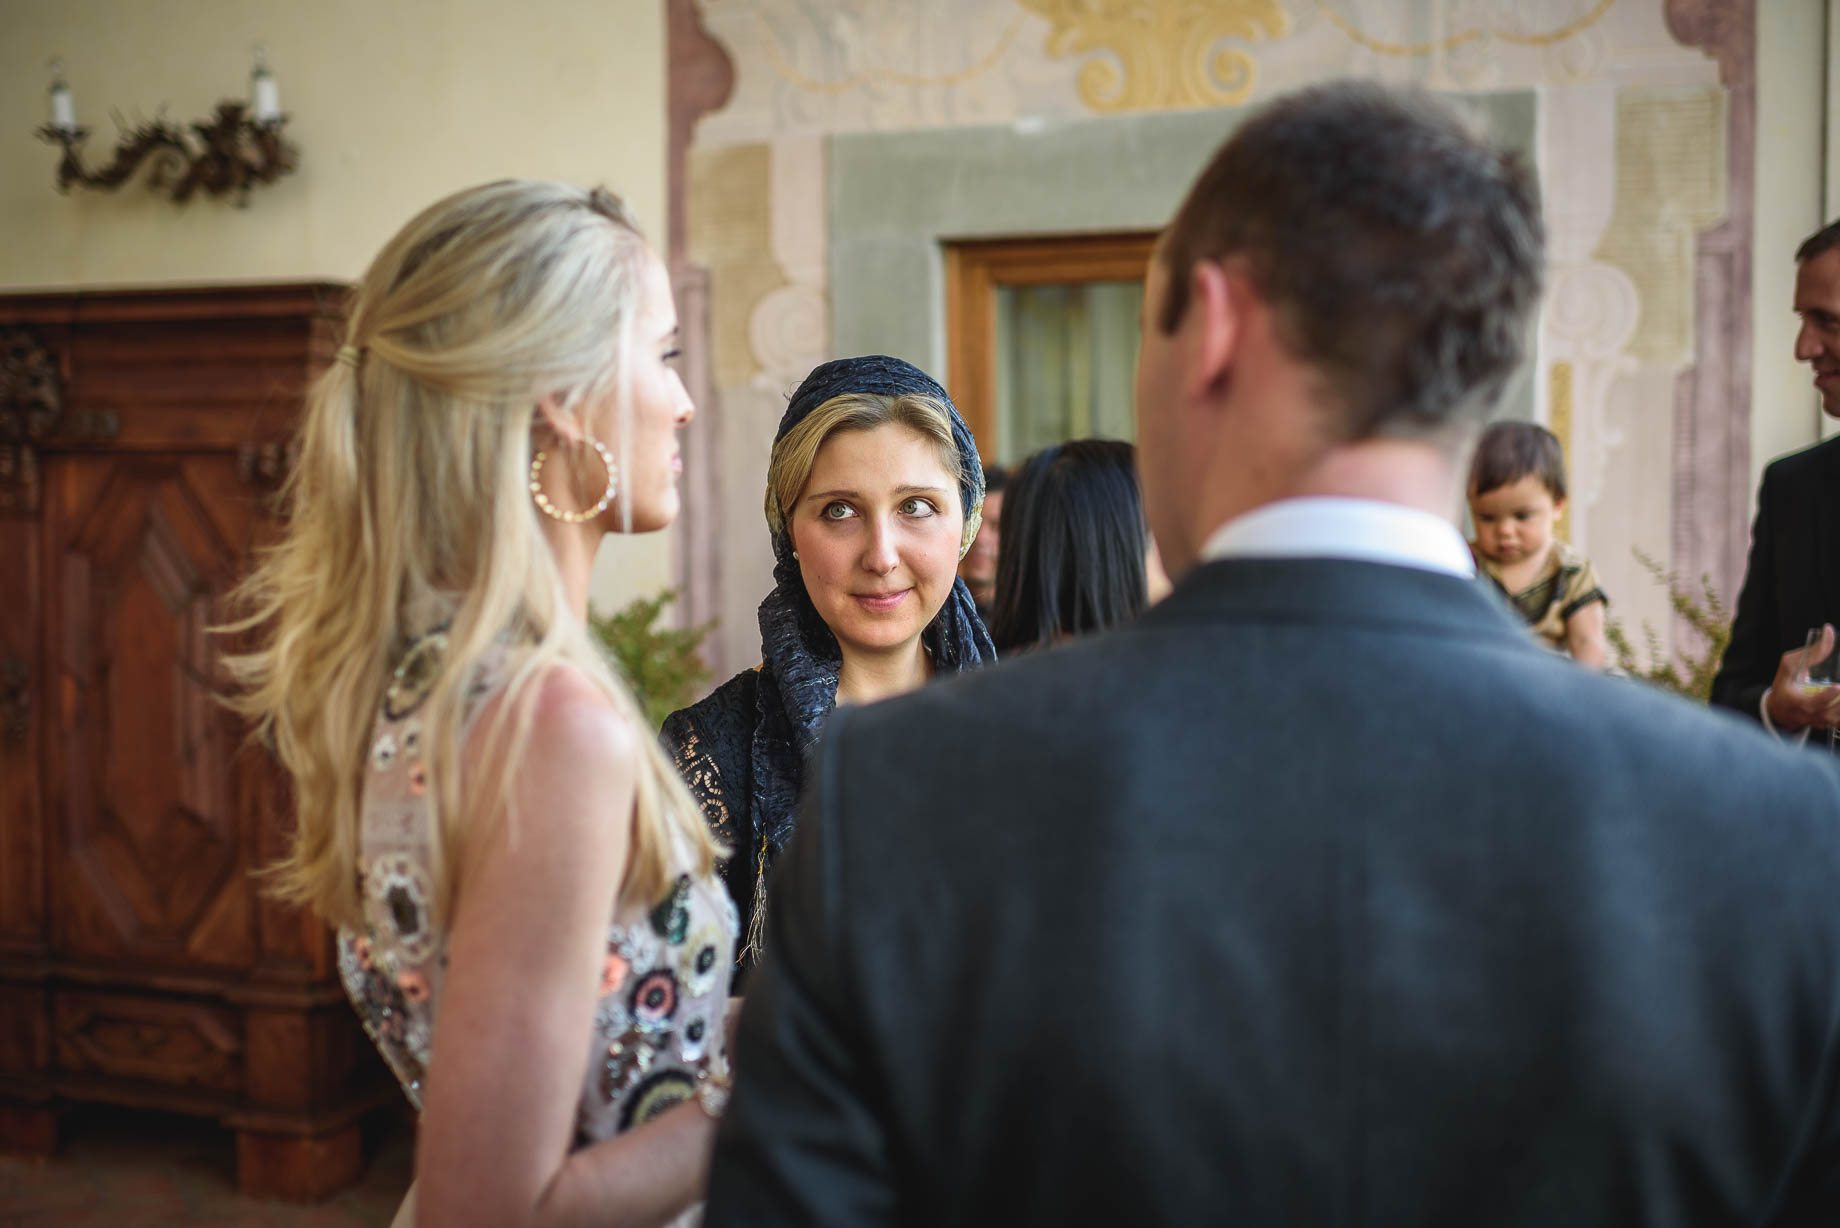 Tuscany wedding photography - Roisin and Moubin - Guy Collier Photography (144 of 194)